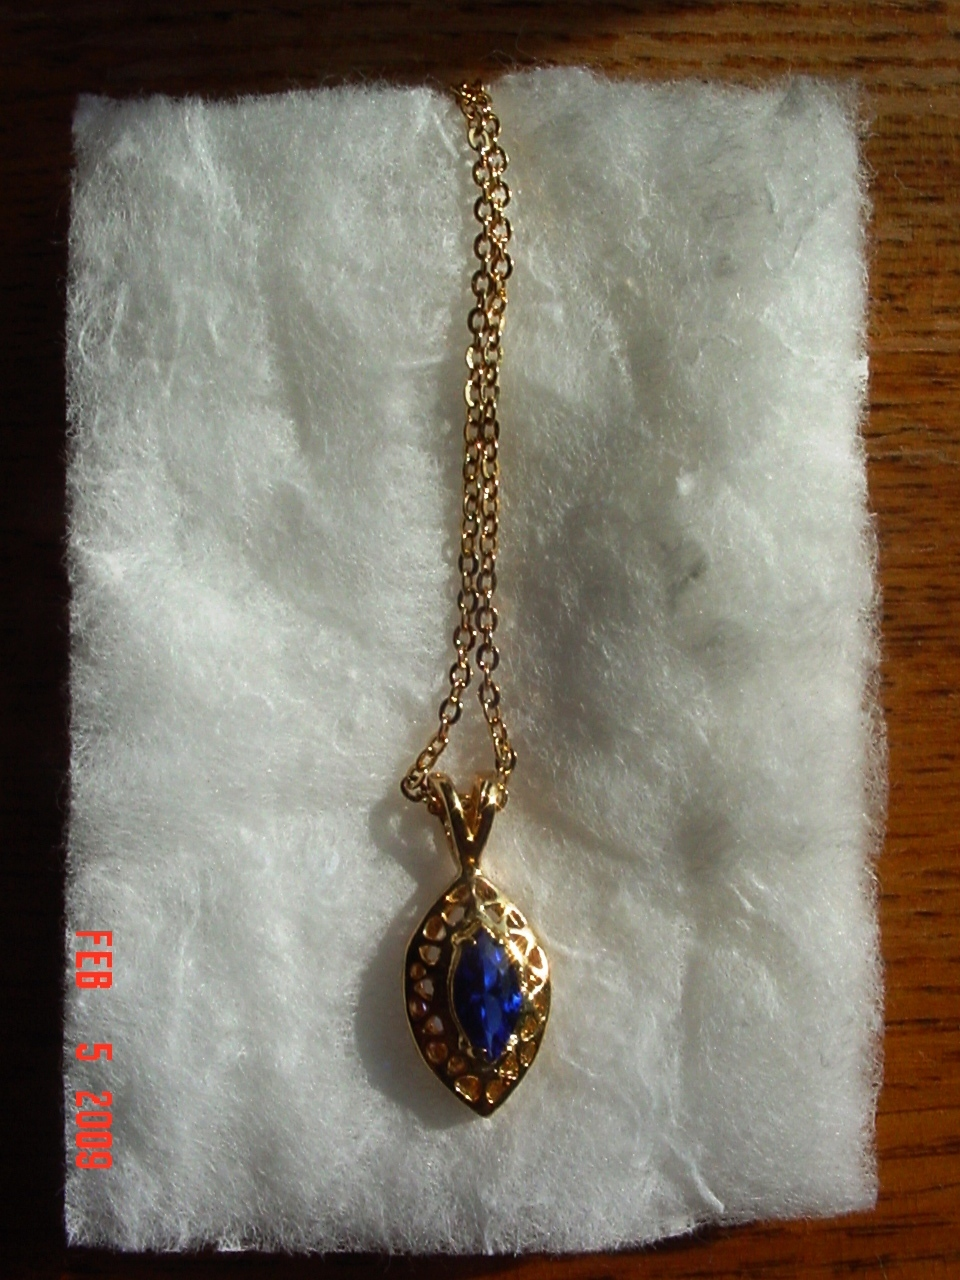 14 Karat Gold Plated Blue Stone Pendant Necklace